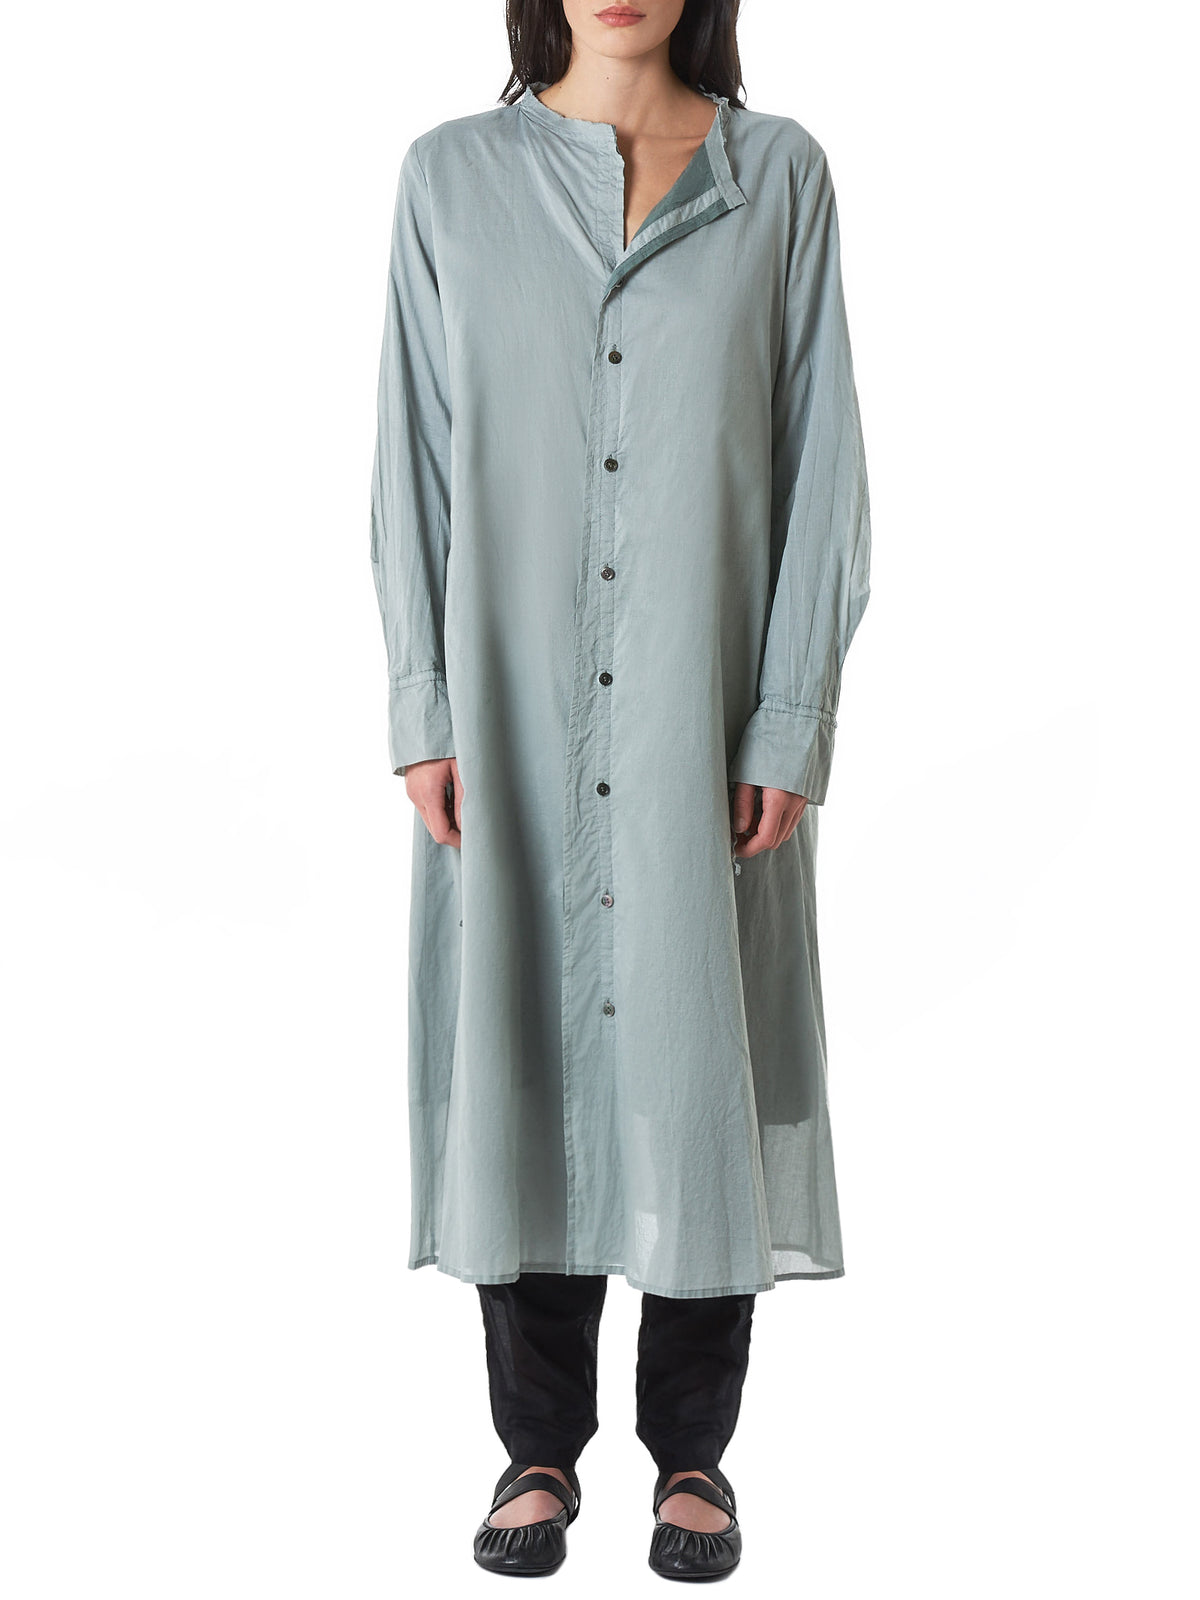 Layered Shirt Dress (YZ-D08-028-LIGHT-GREEN)